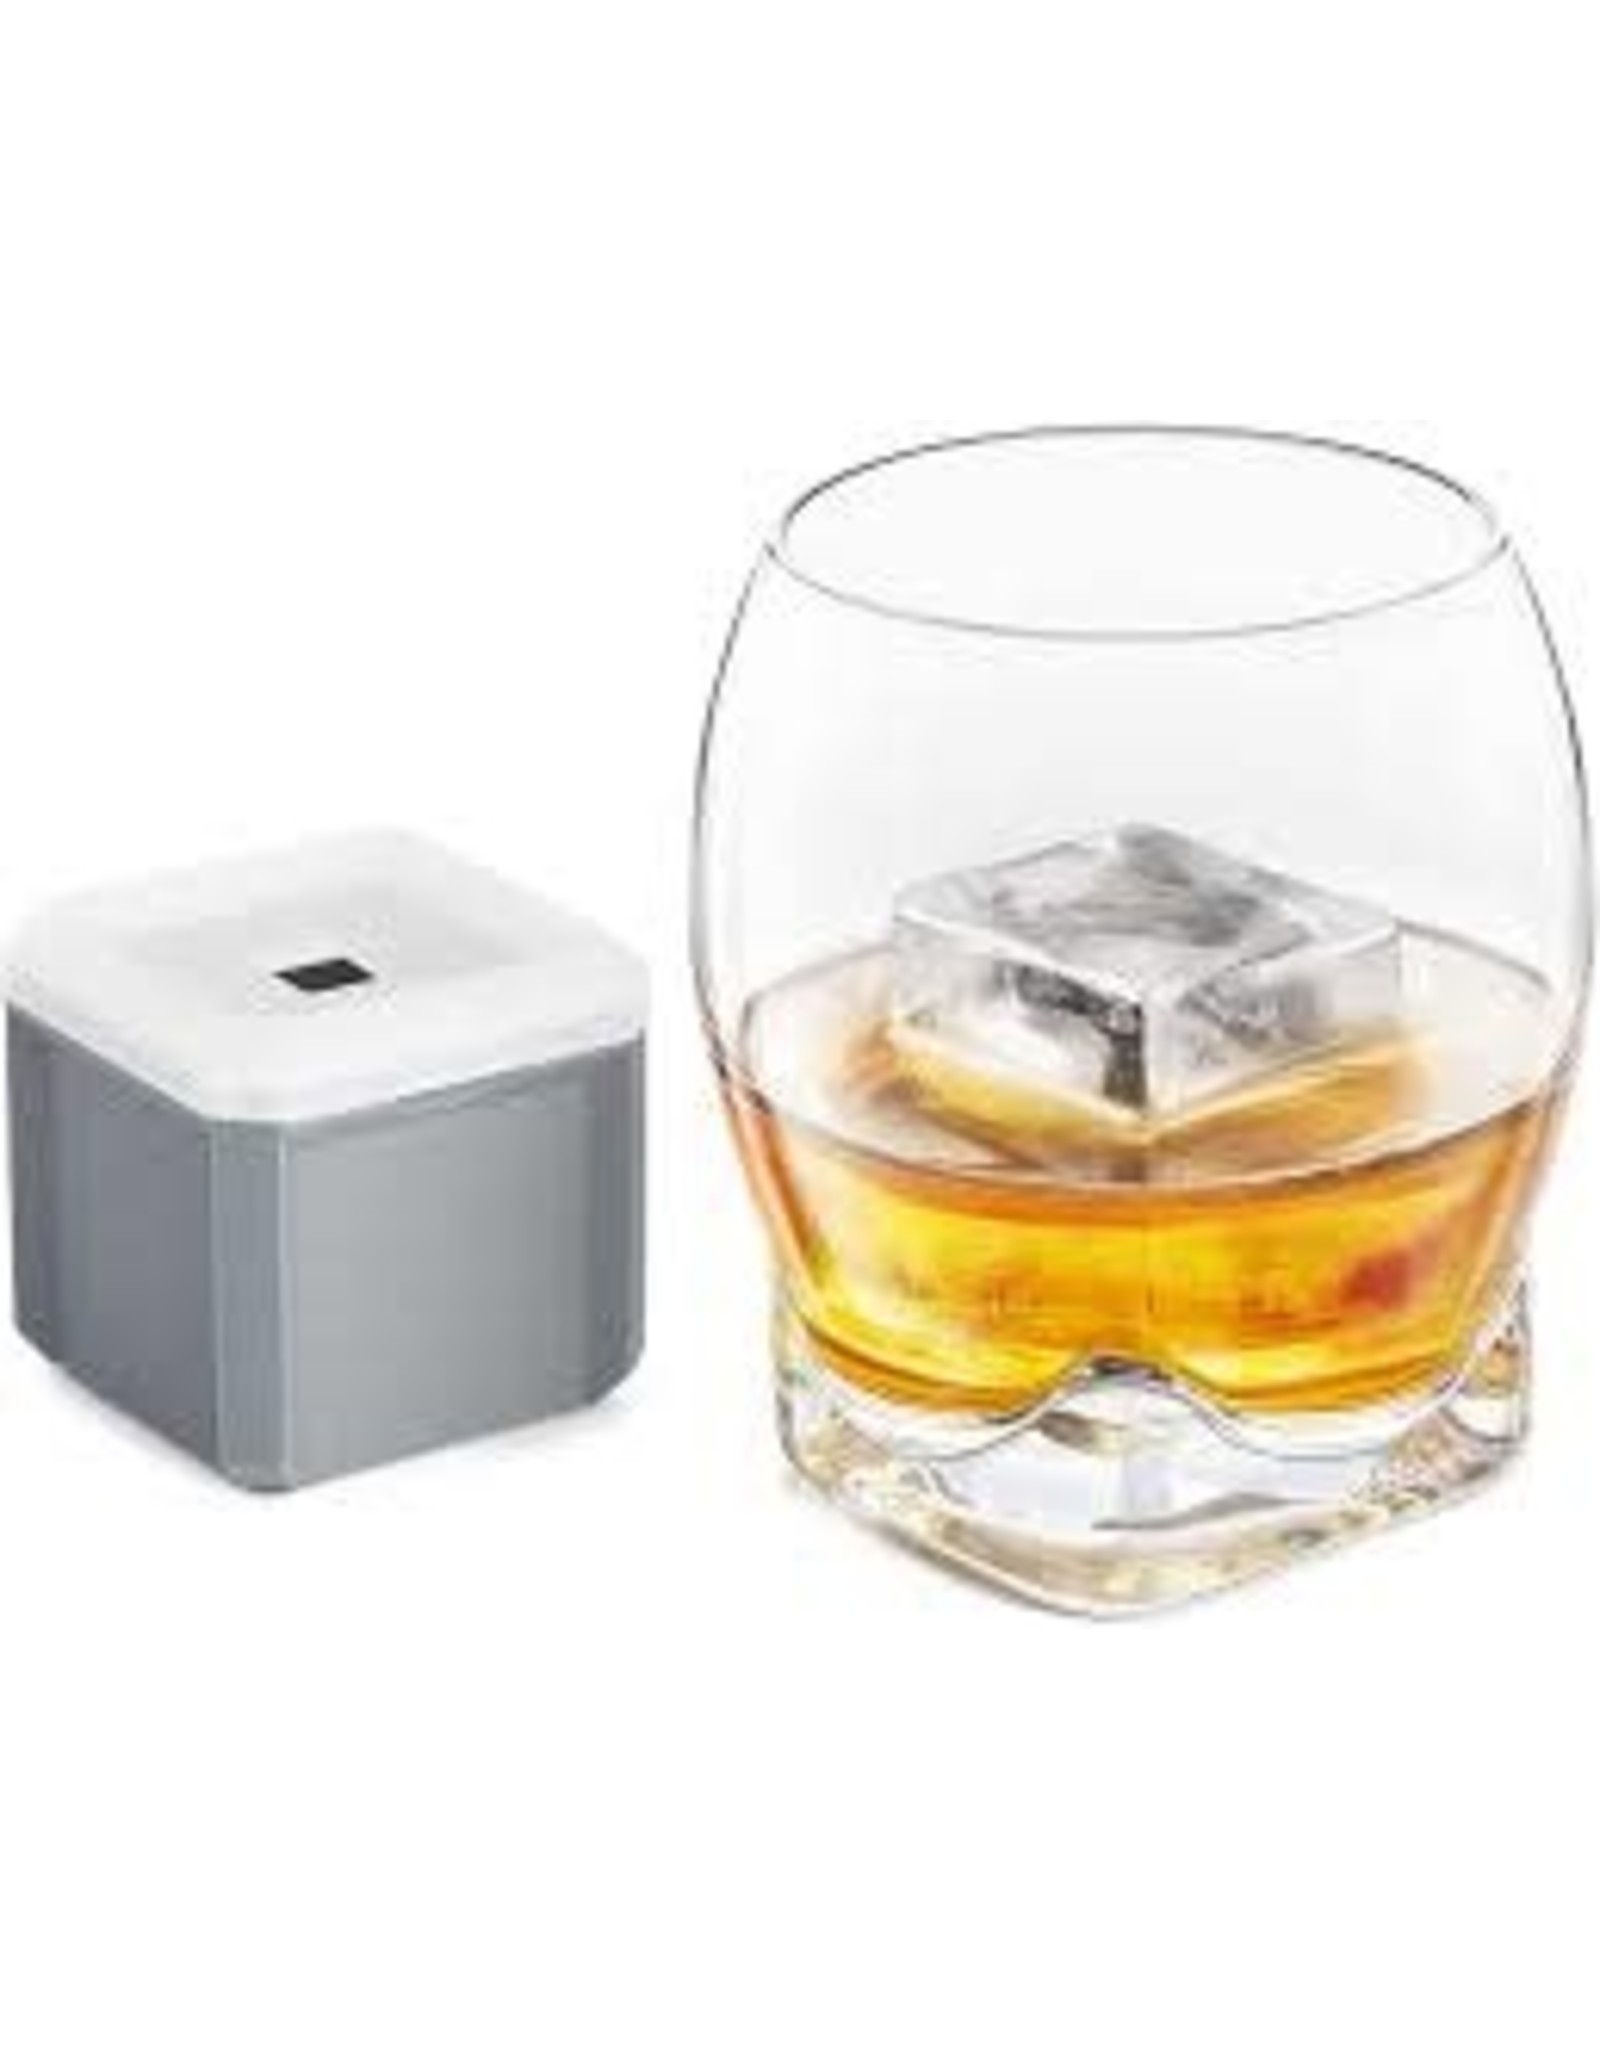 Final Touch- Colossal Ice Cube Whiskey Glass